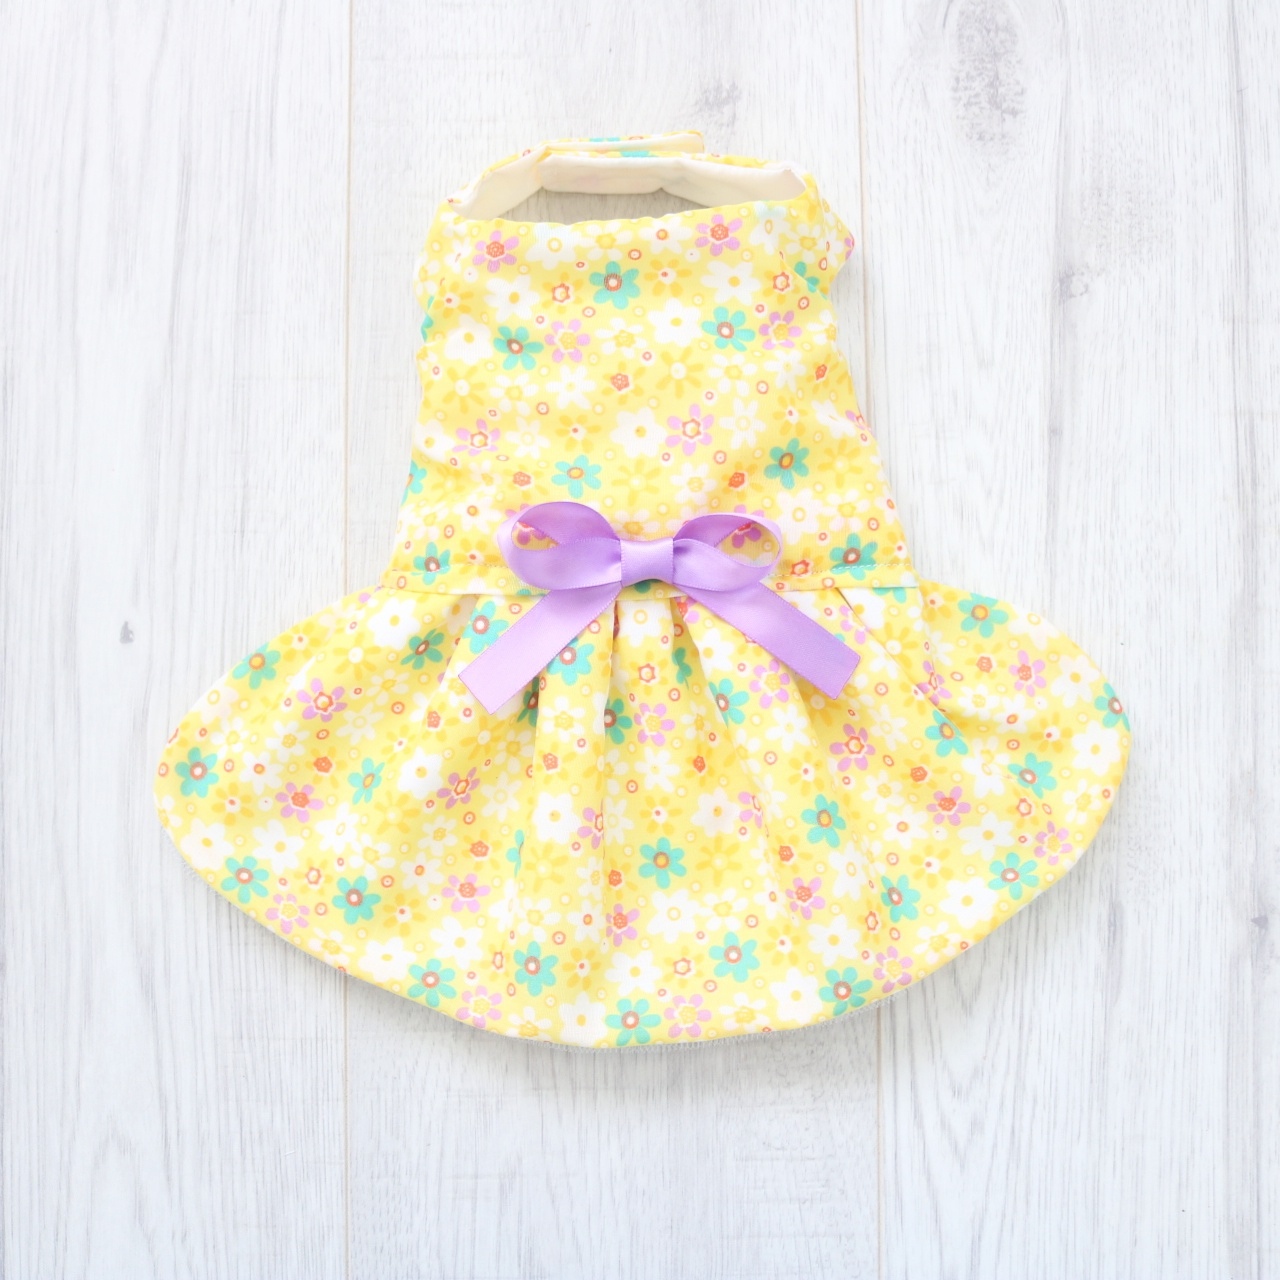 yellow floral dog dress with purple ribbons